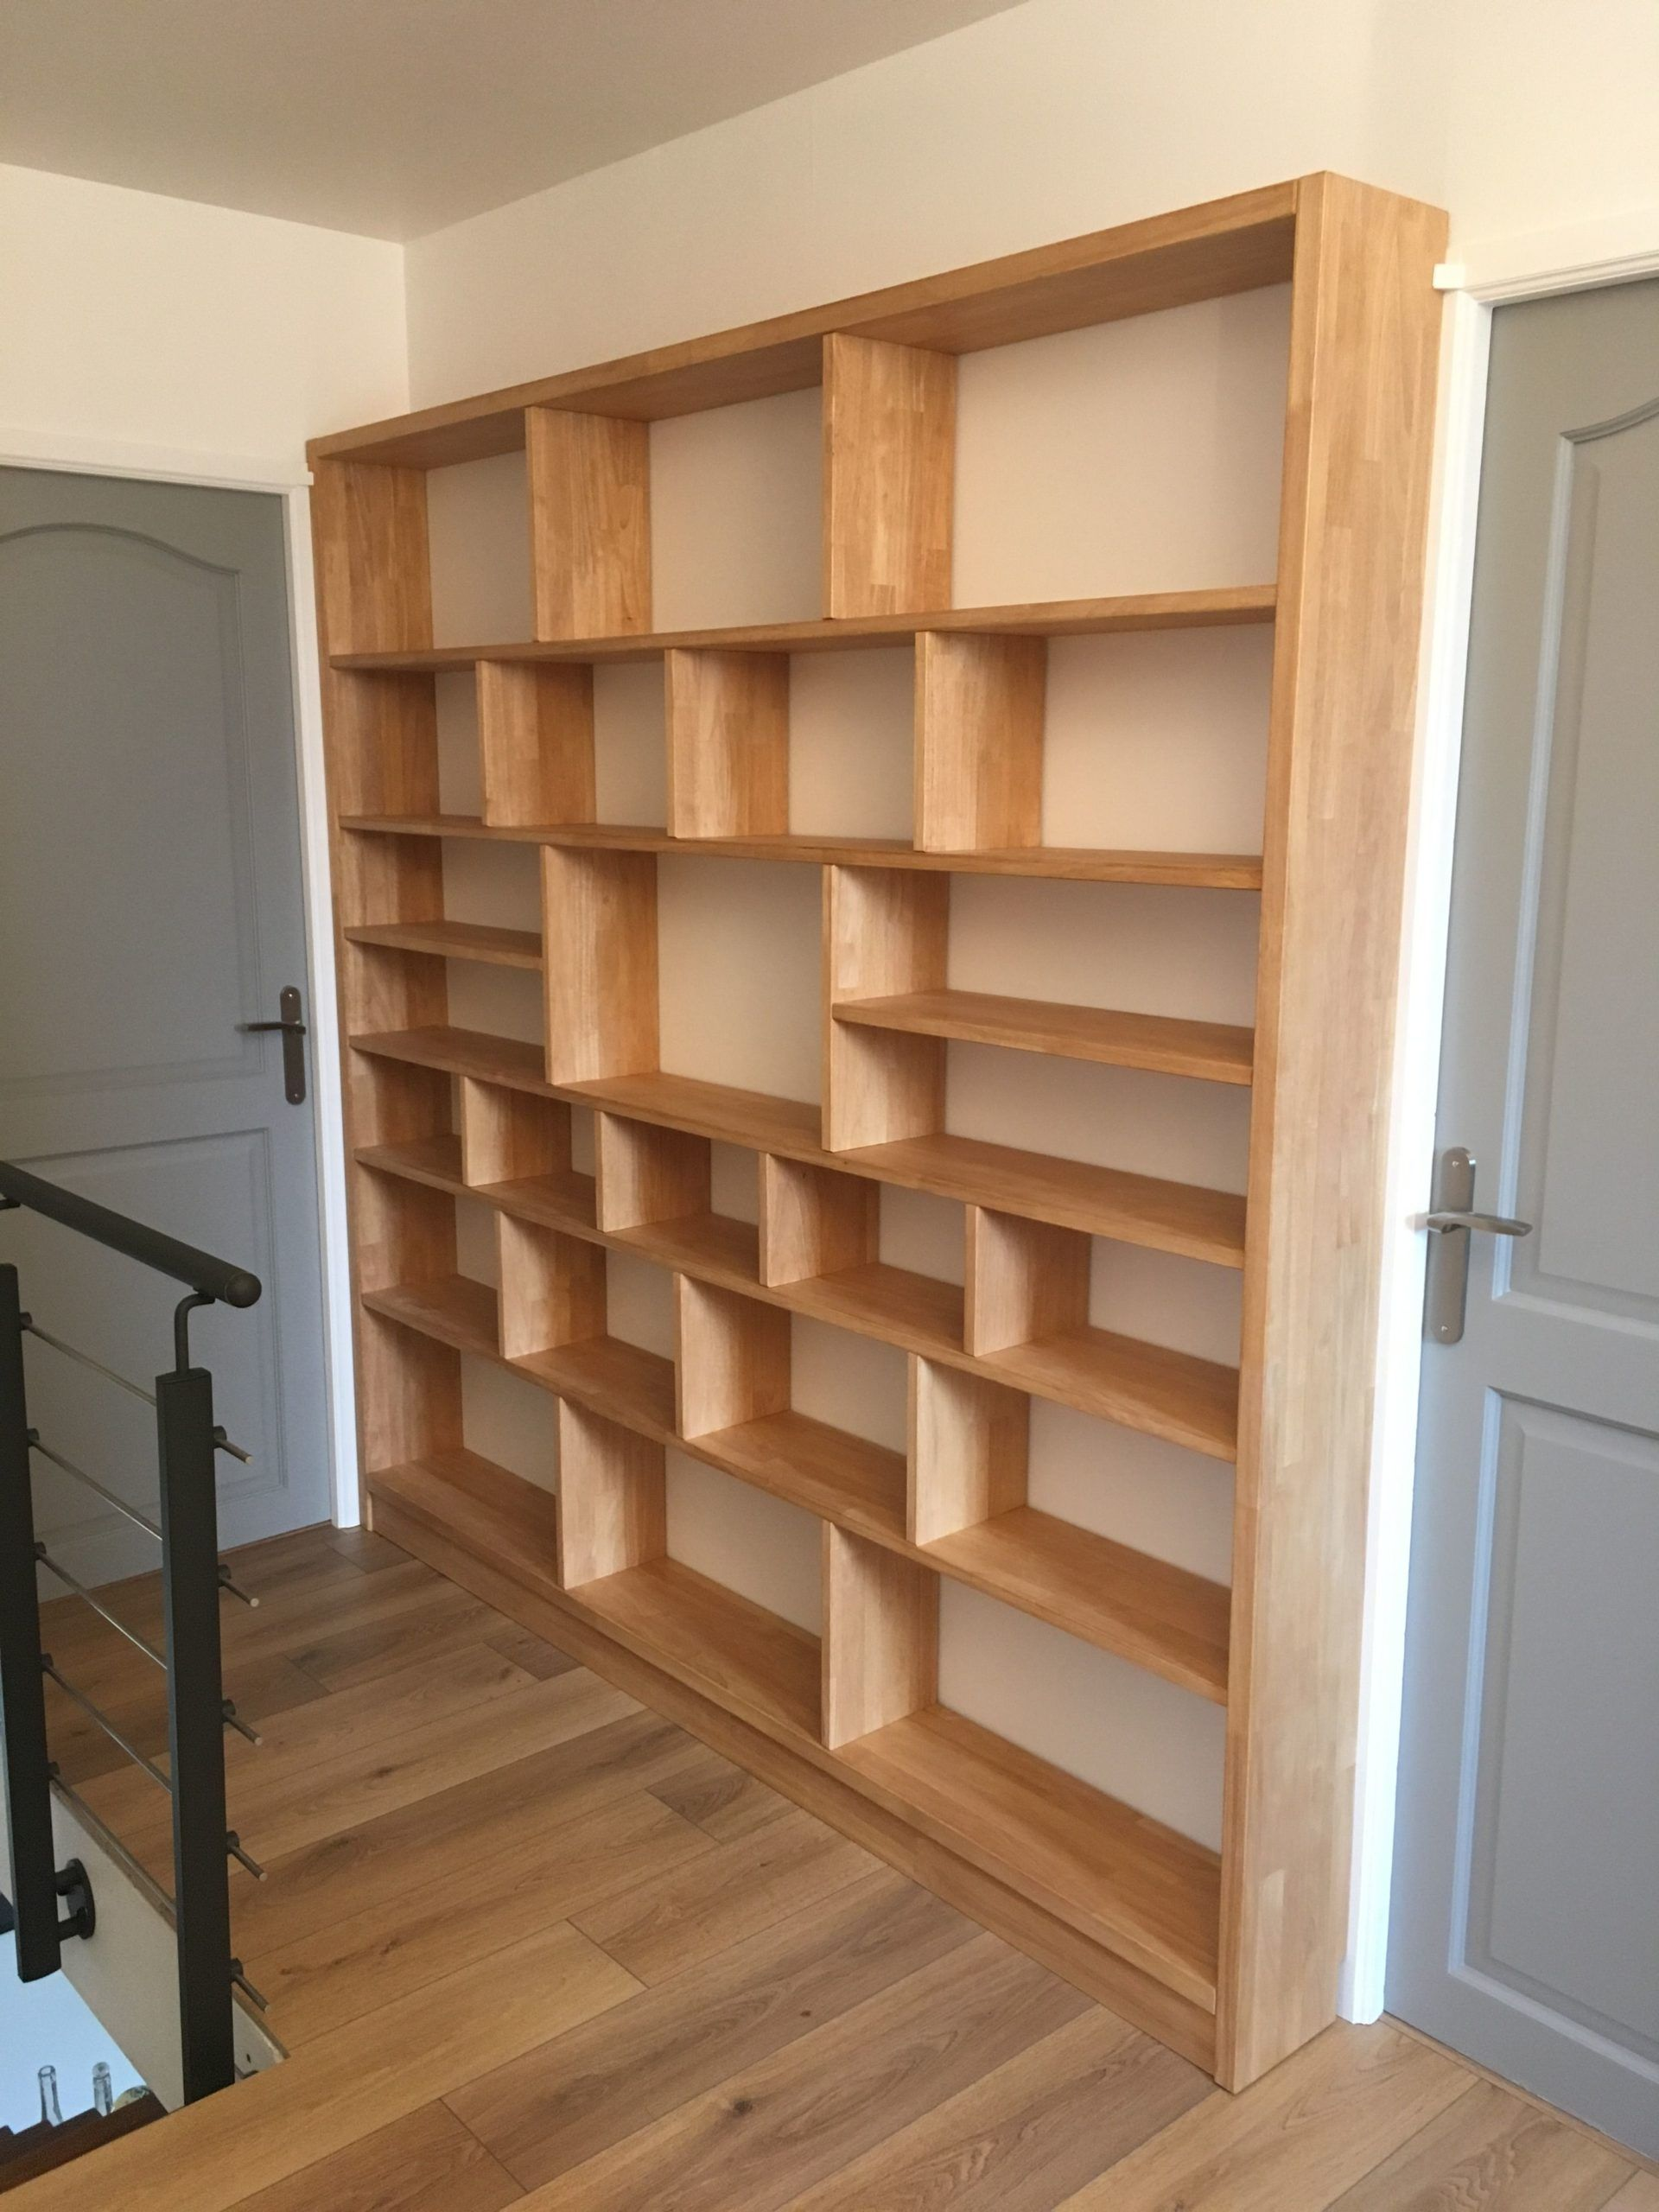 Designer Bucherregal Aus Massivholz In 2020 Bookcase Diy